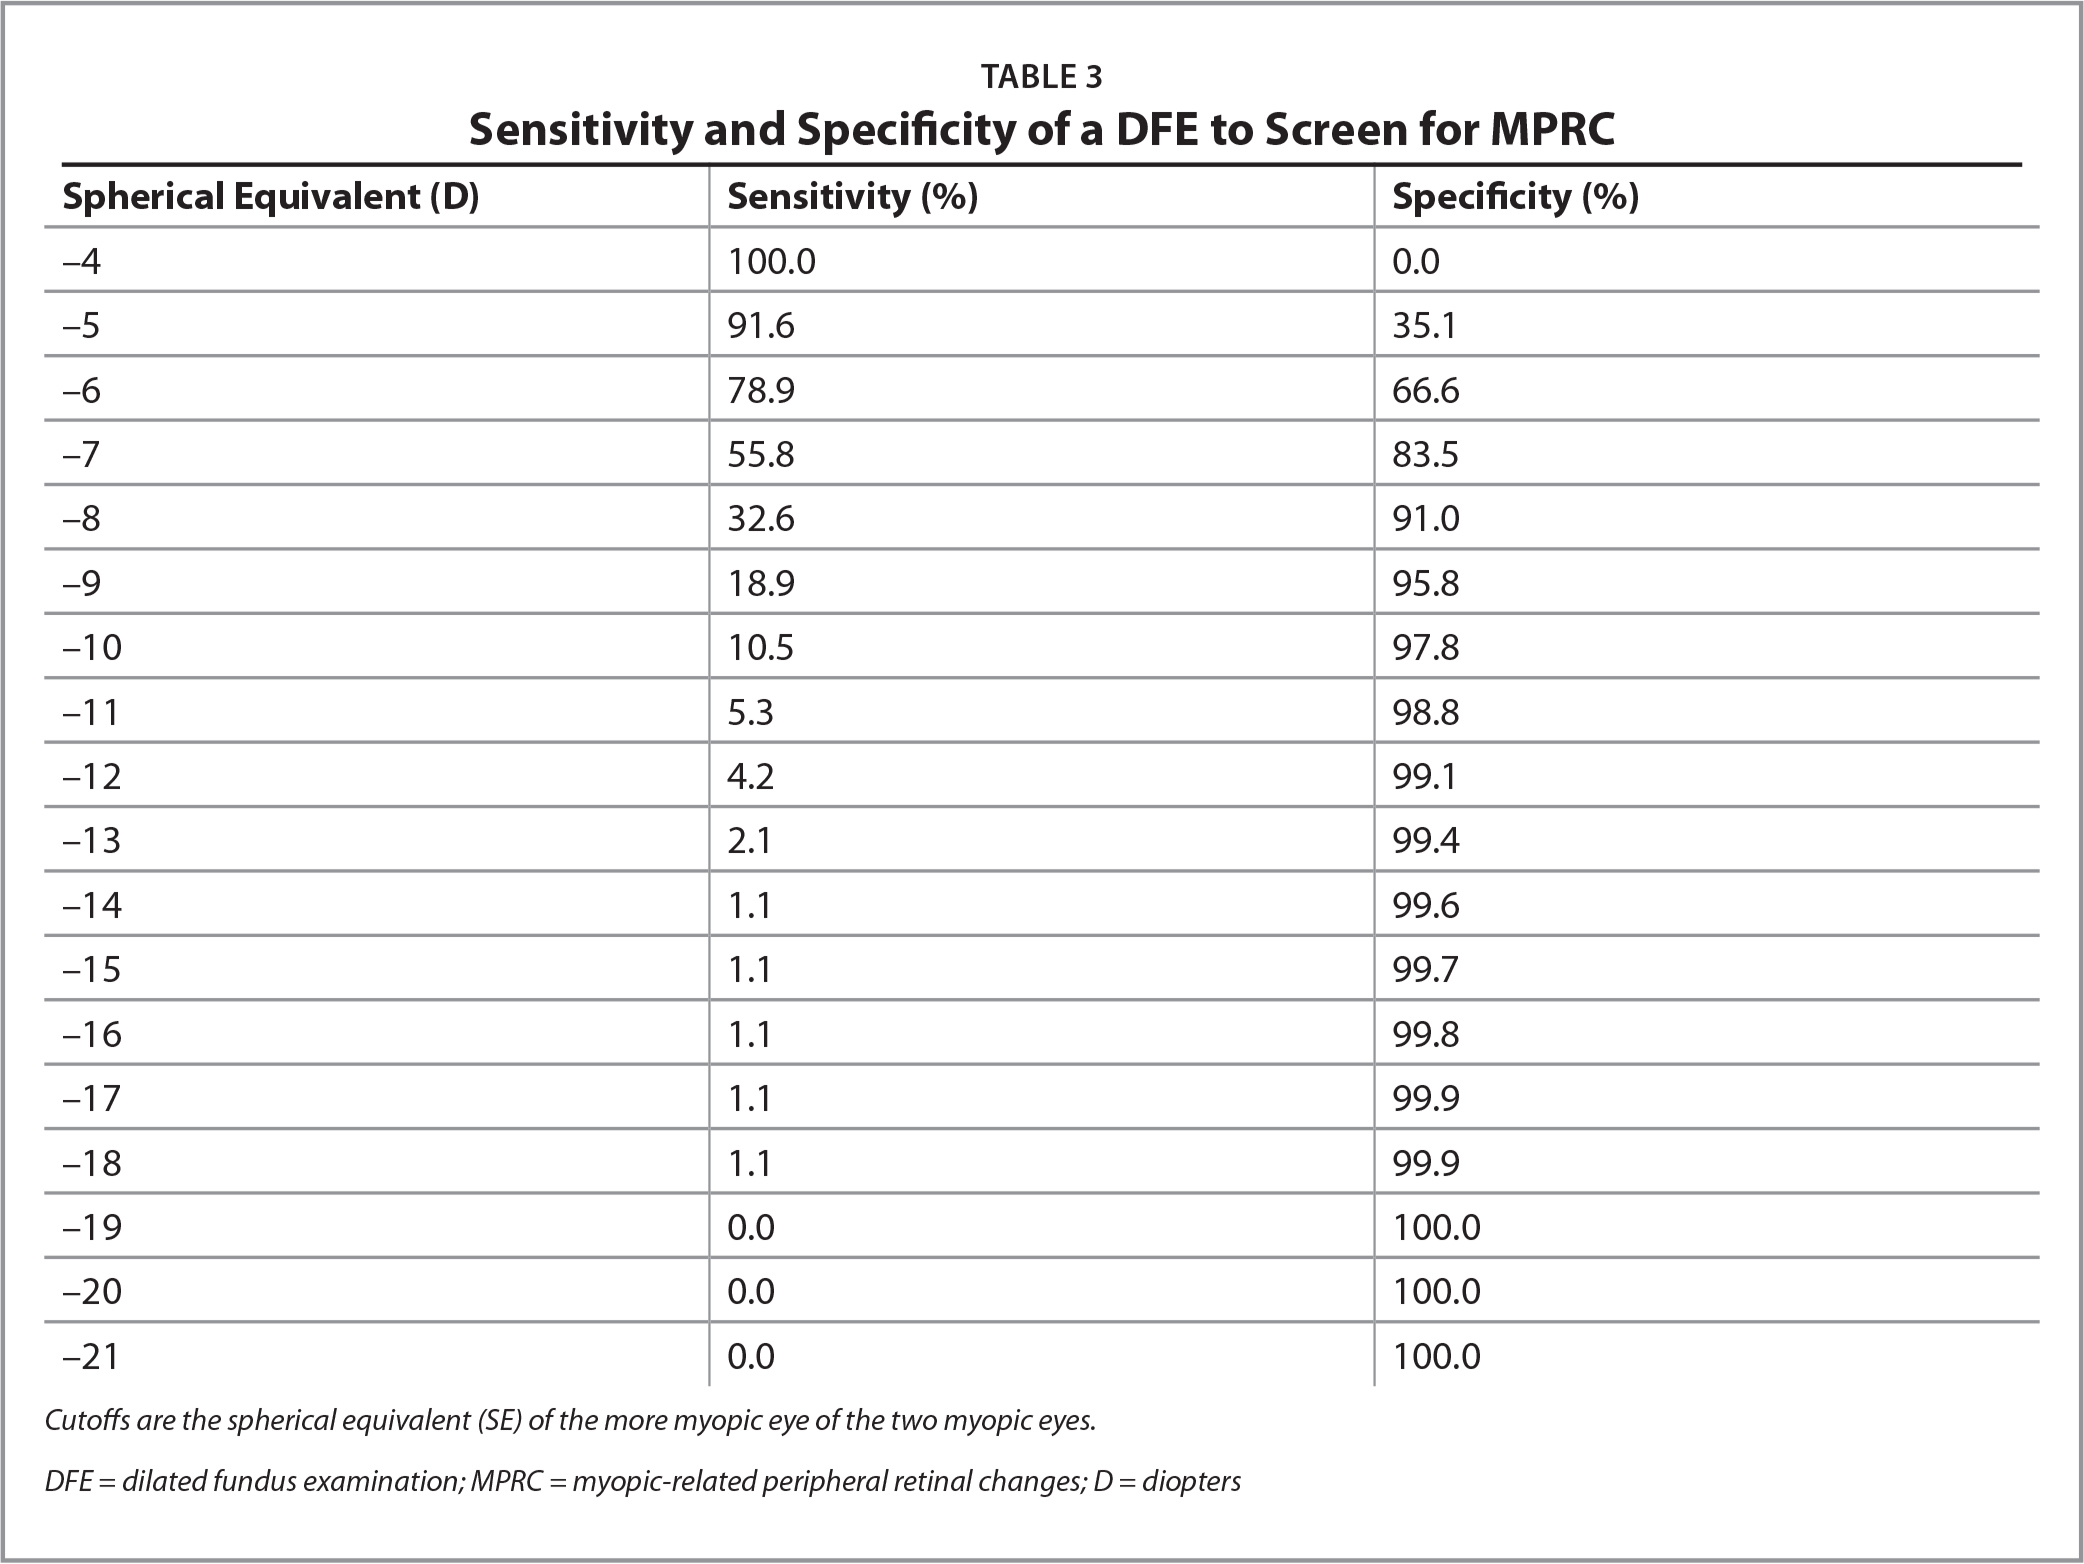 Sensitivity and Specificity of a DFE to Screen for MPRC